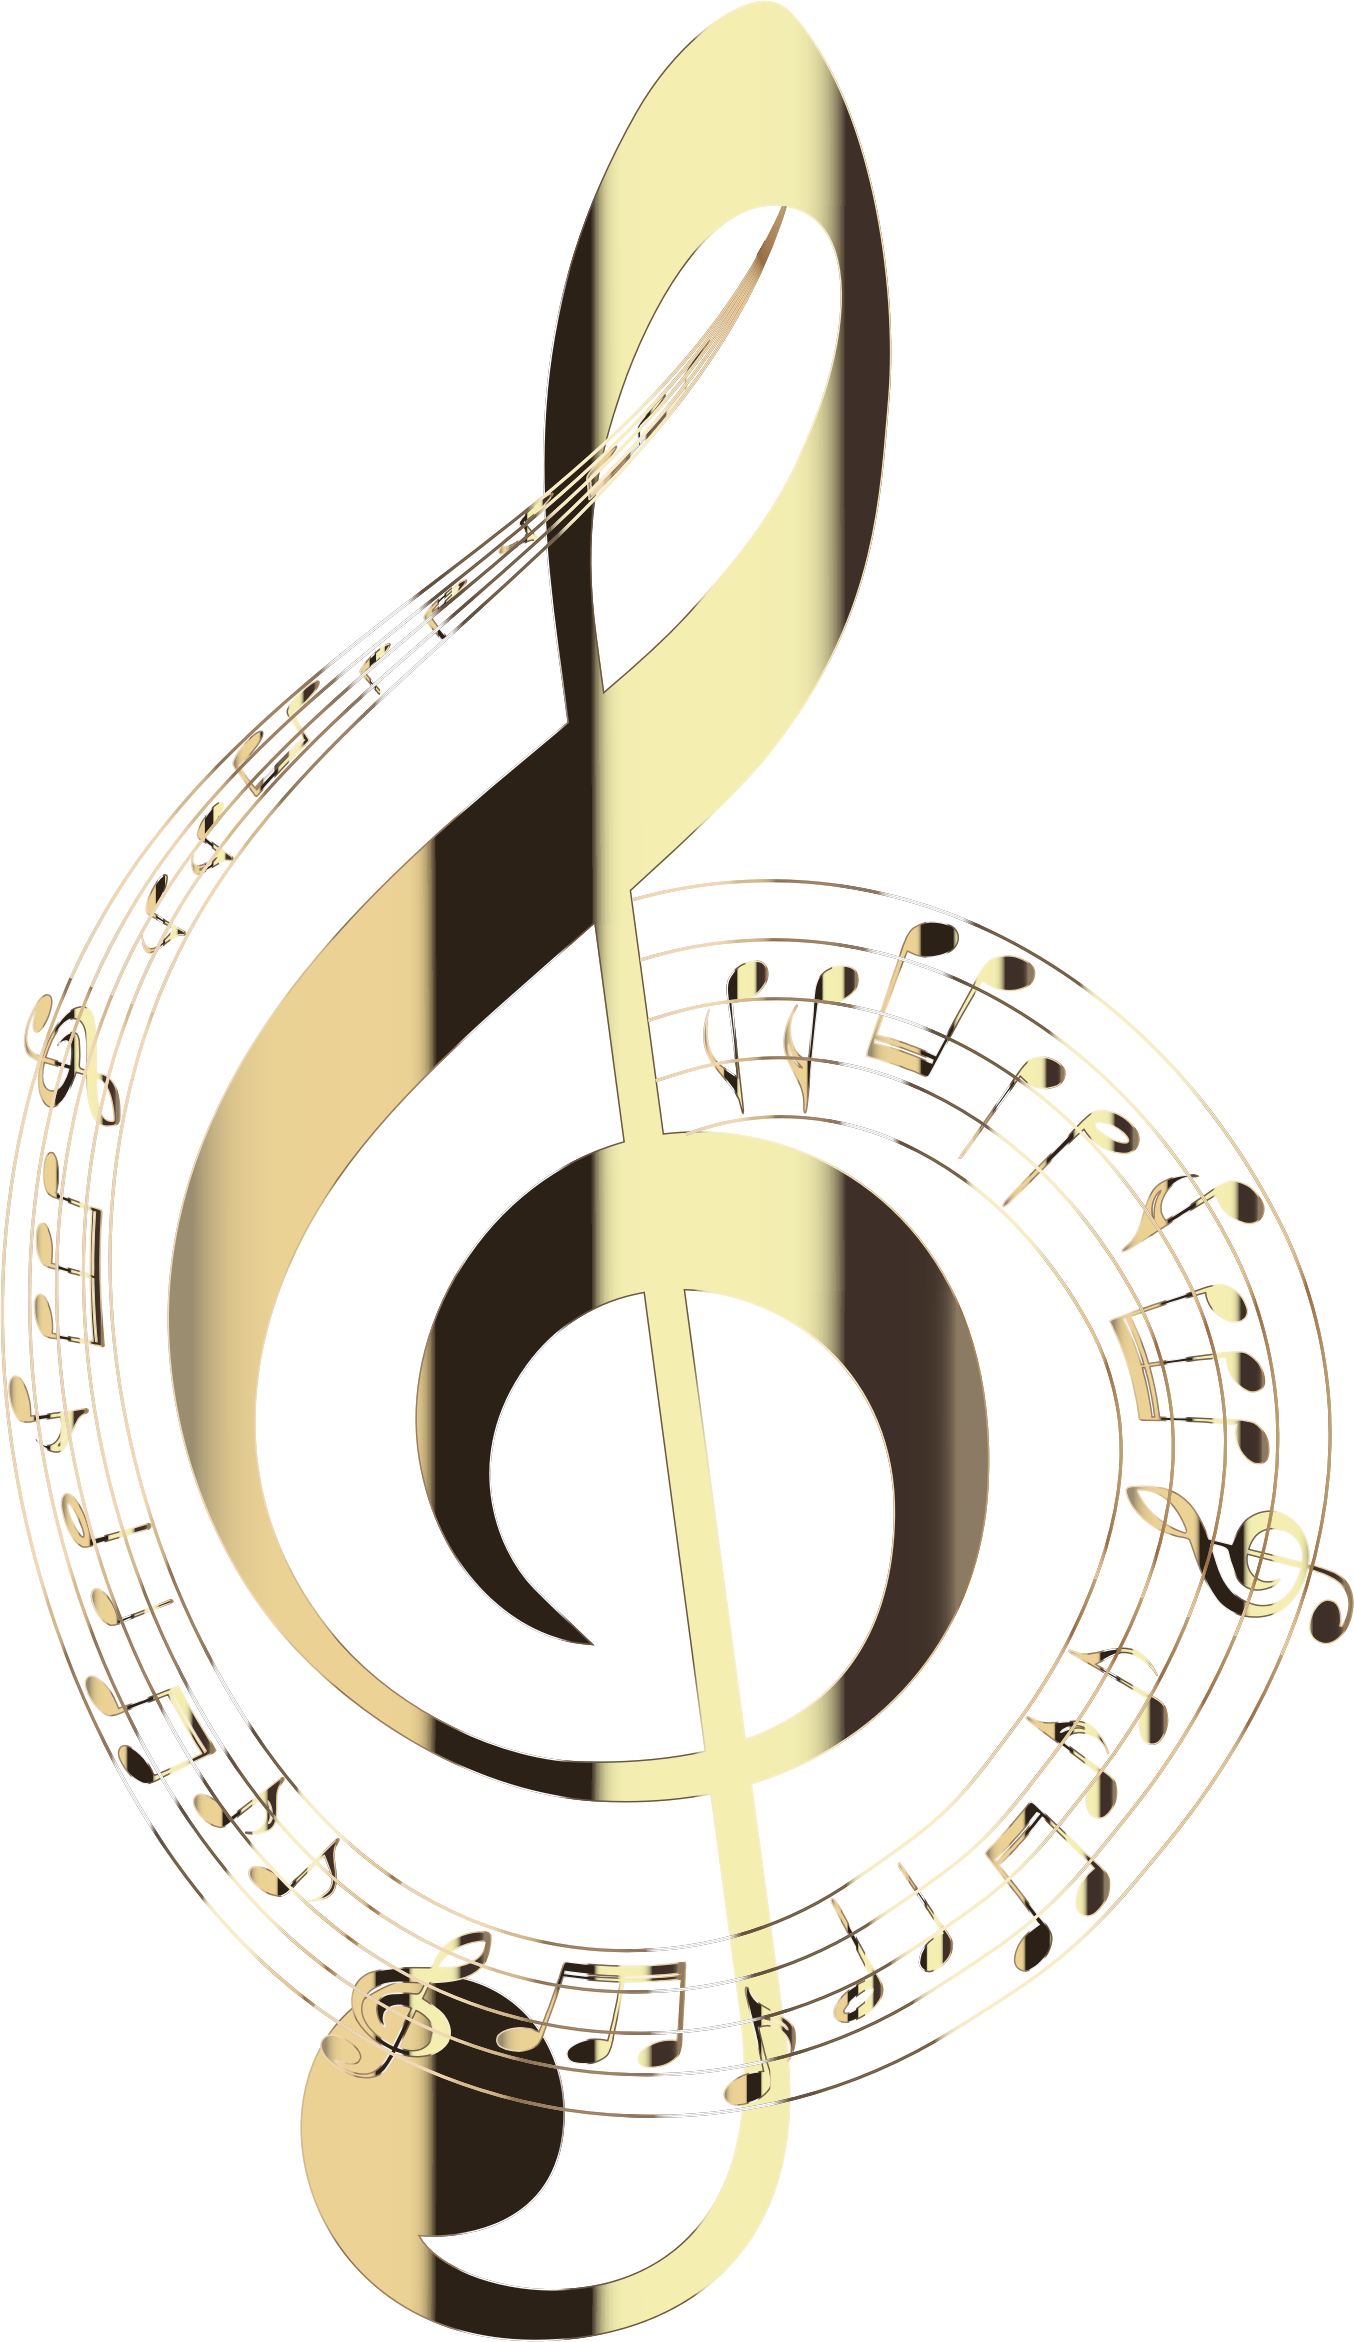 Polished Brass Musical Notes Typography No Background by GDJ